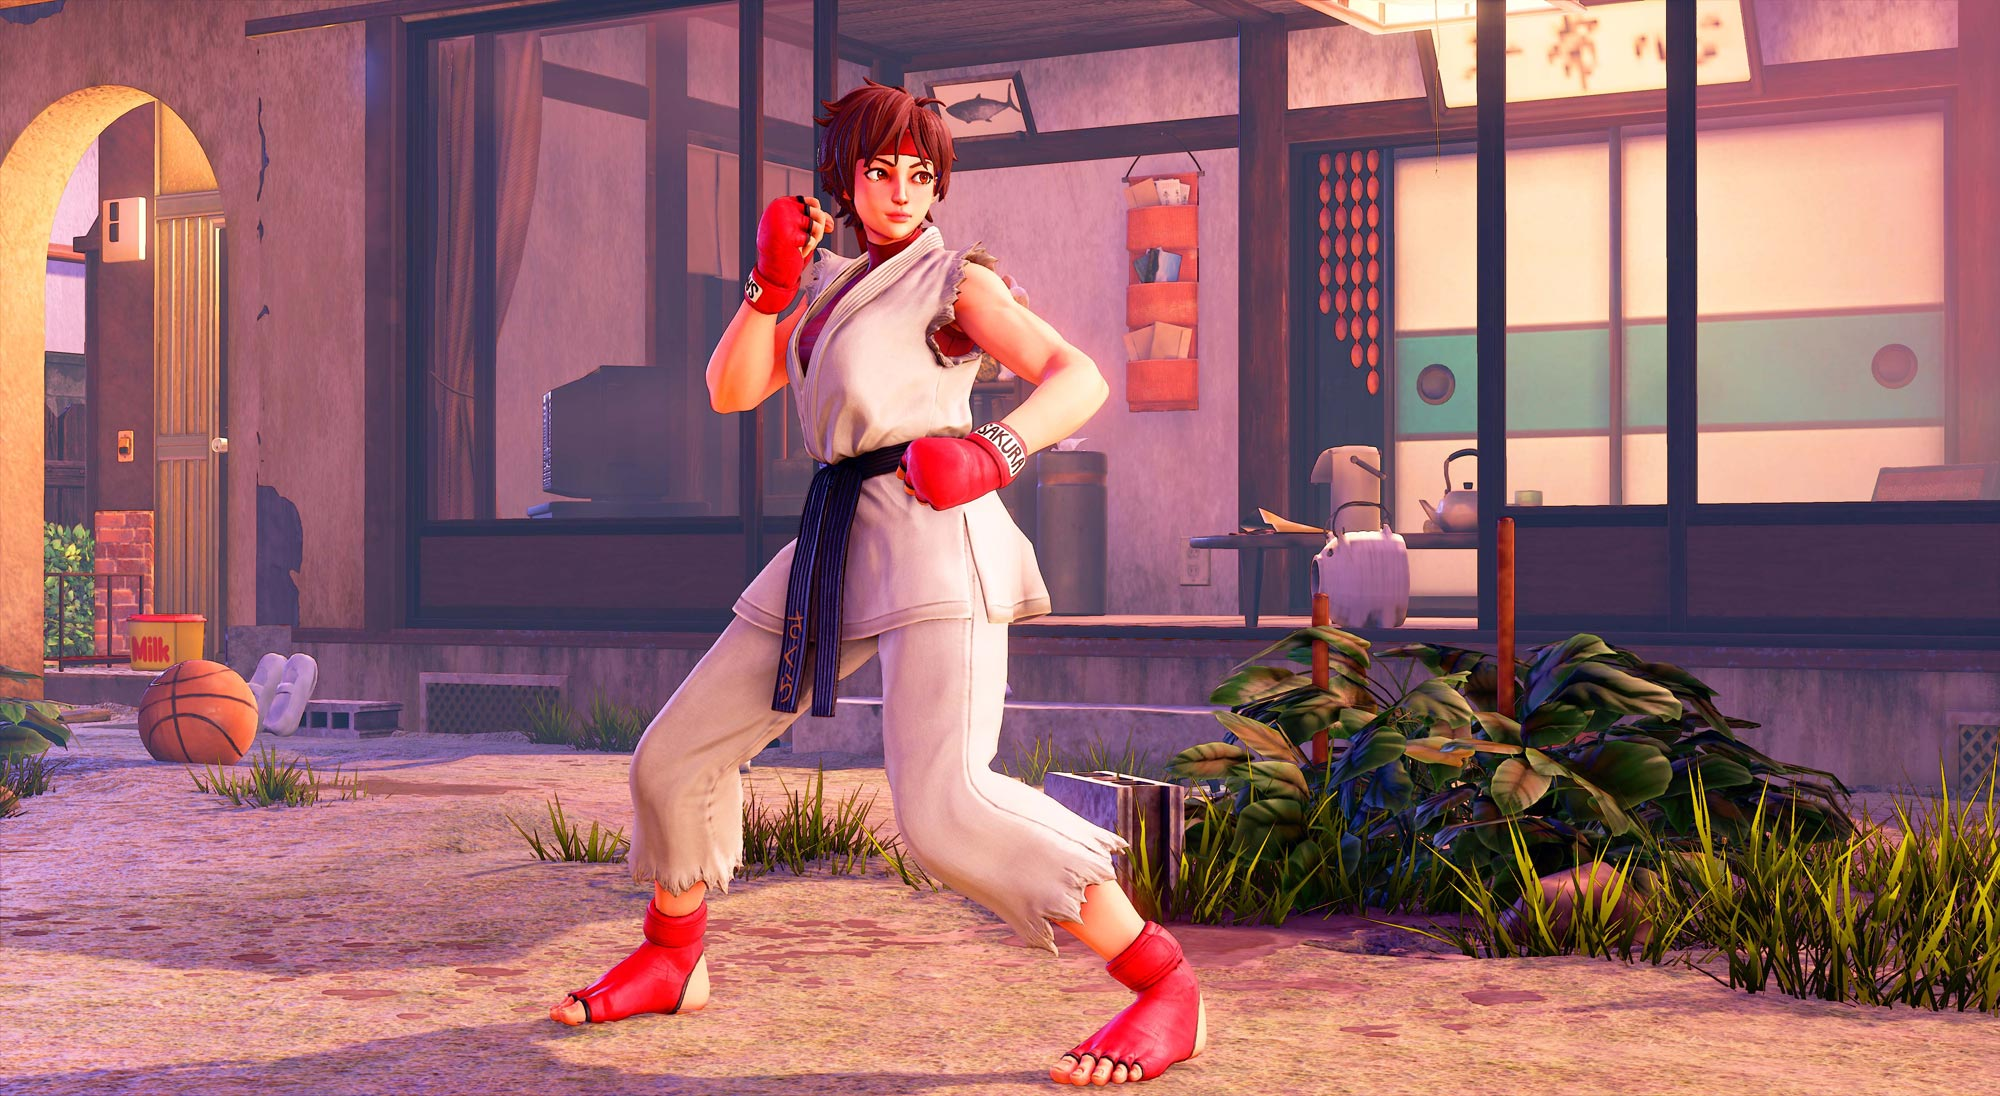 Street Fighter 5: Arcade Edition launch images 14 out of 15 image gallery